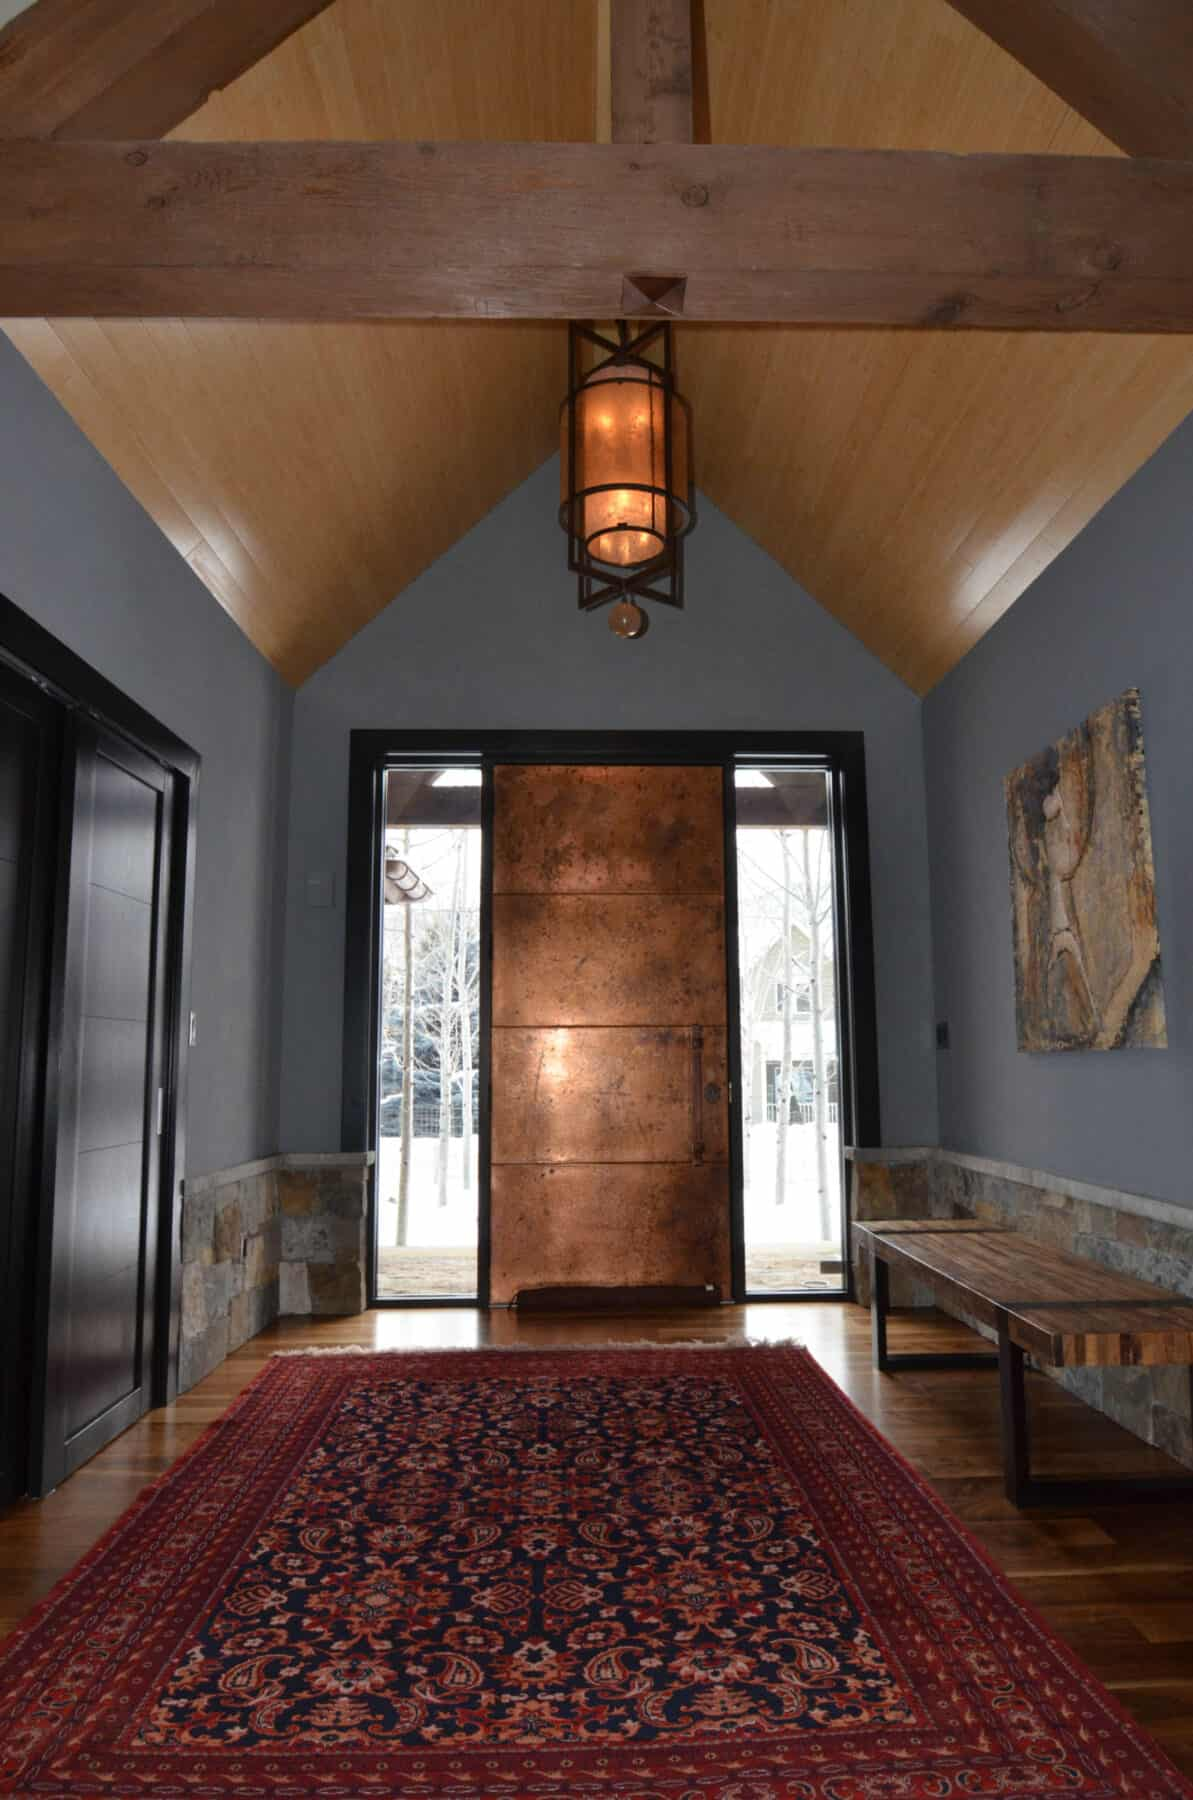 Hand made Copper Entry Door with Matching Amber Shade Chandelier in Aspen, Colorado Custom Home. Luxury Home Building Interiors